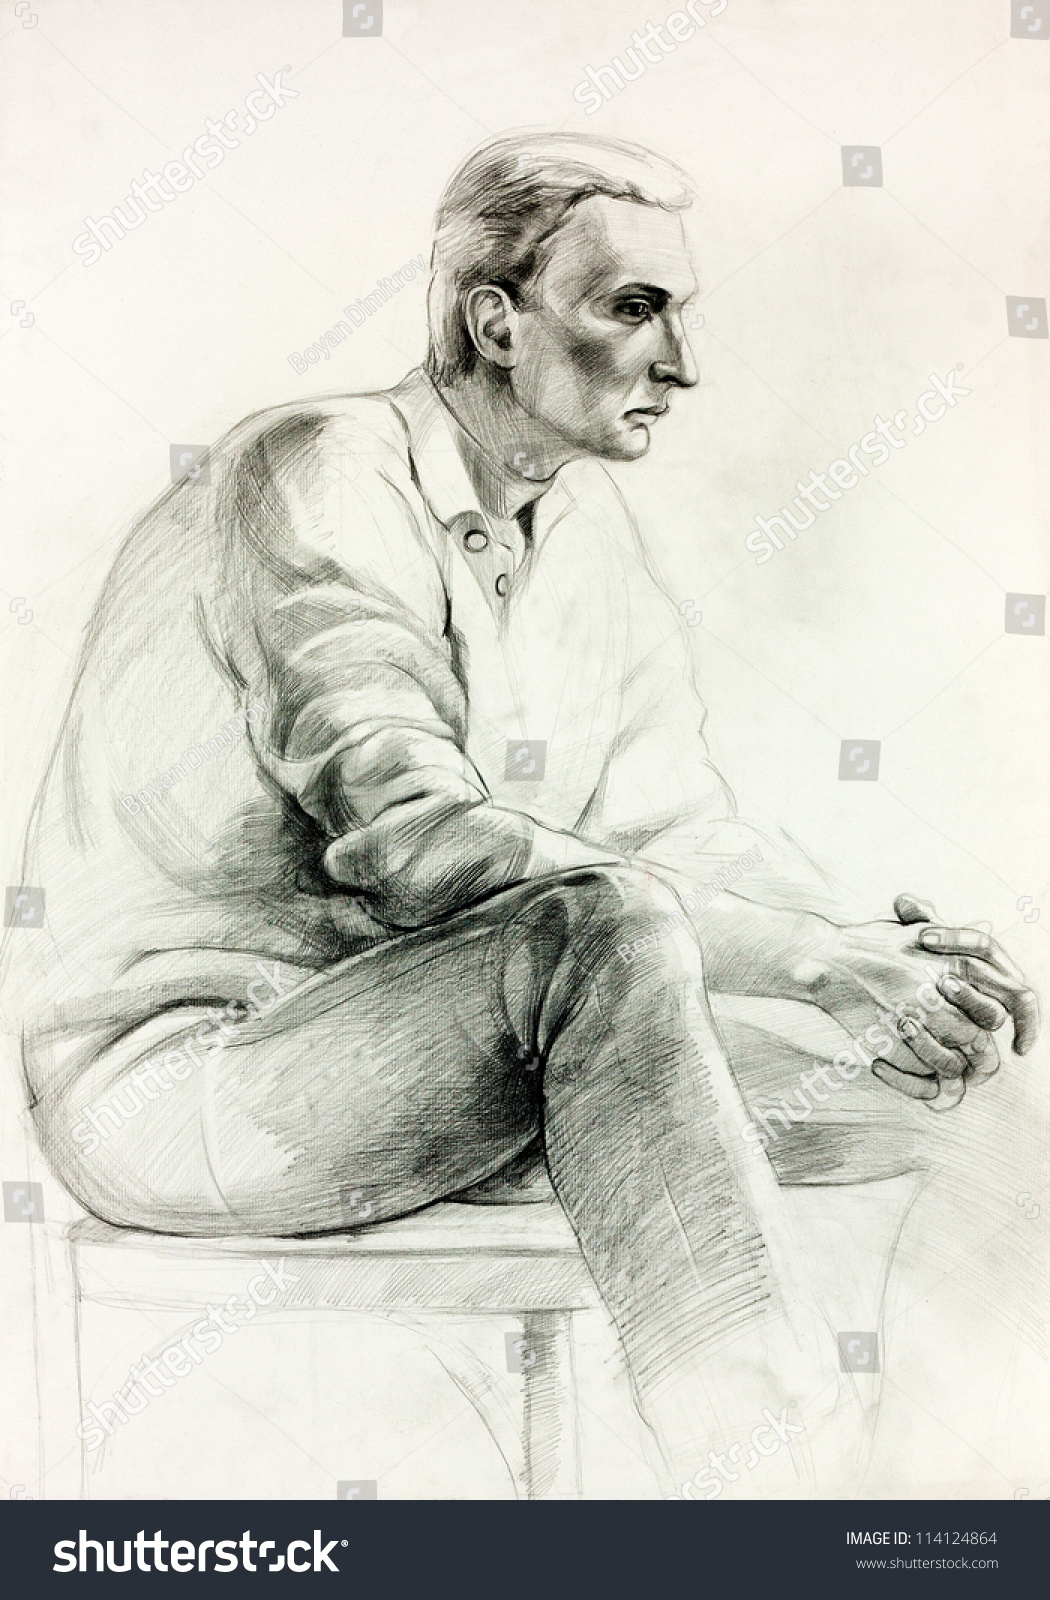 Man sitting in chair drawing - Original Pastel Or Drawing Charcoal And Hand Drawn Painting Or Working Sketch Of A Man